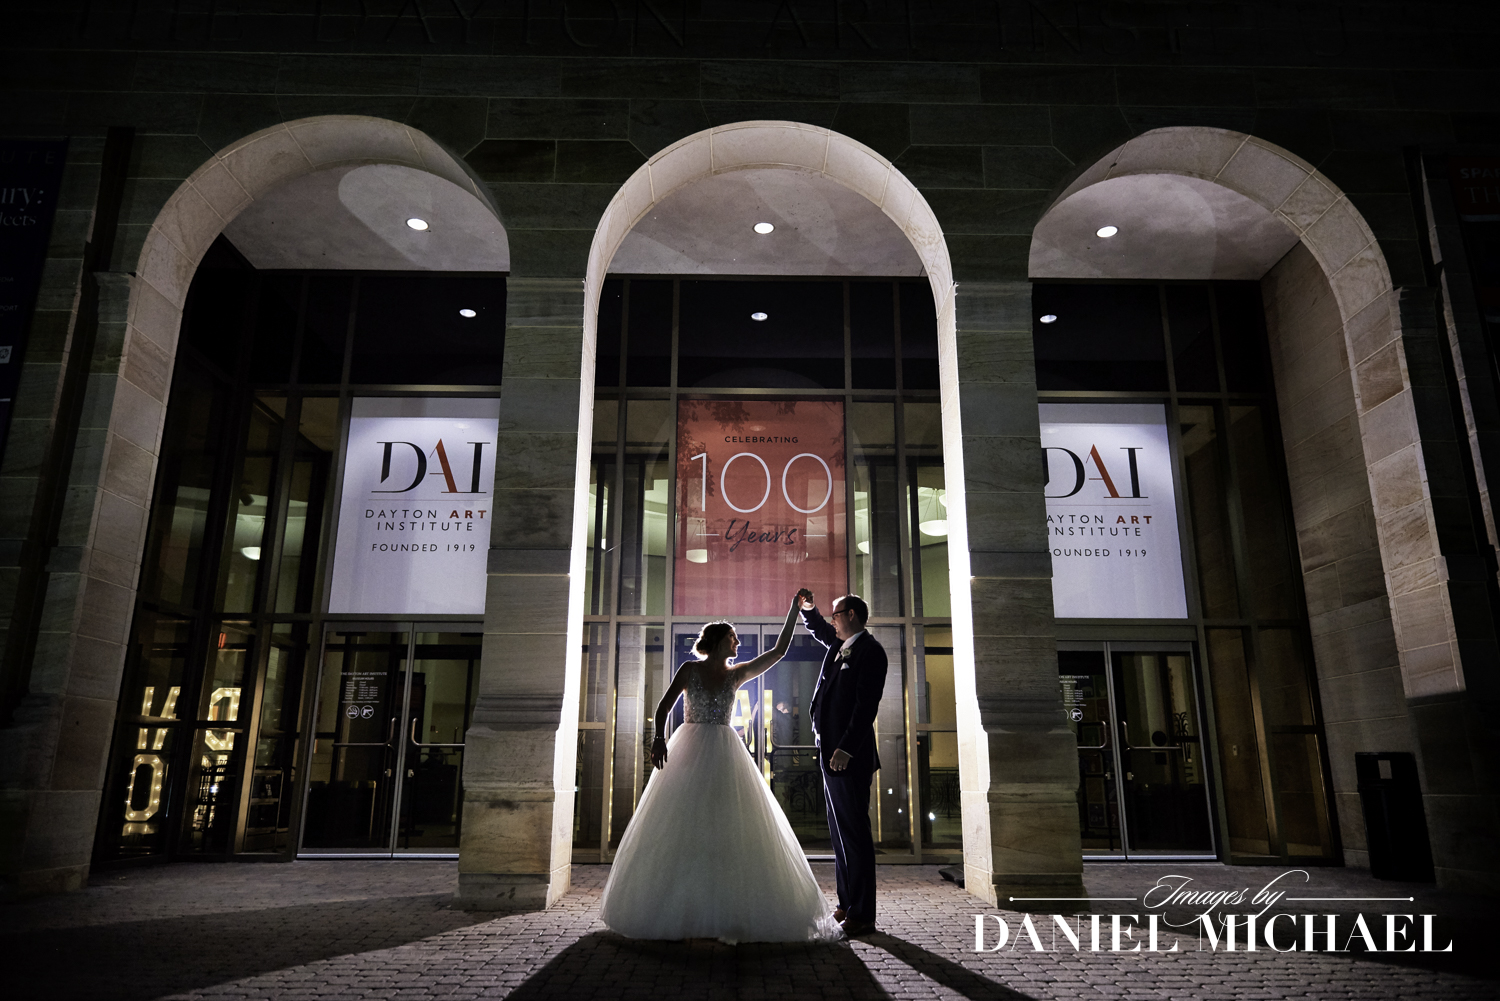 Dayton Art Institute Wedding Photo at Night